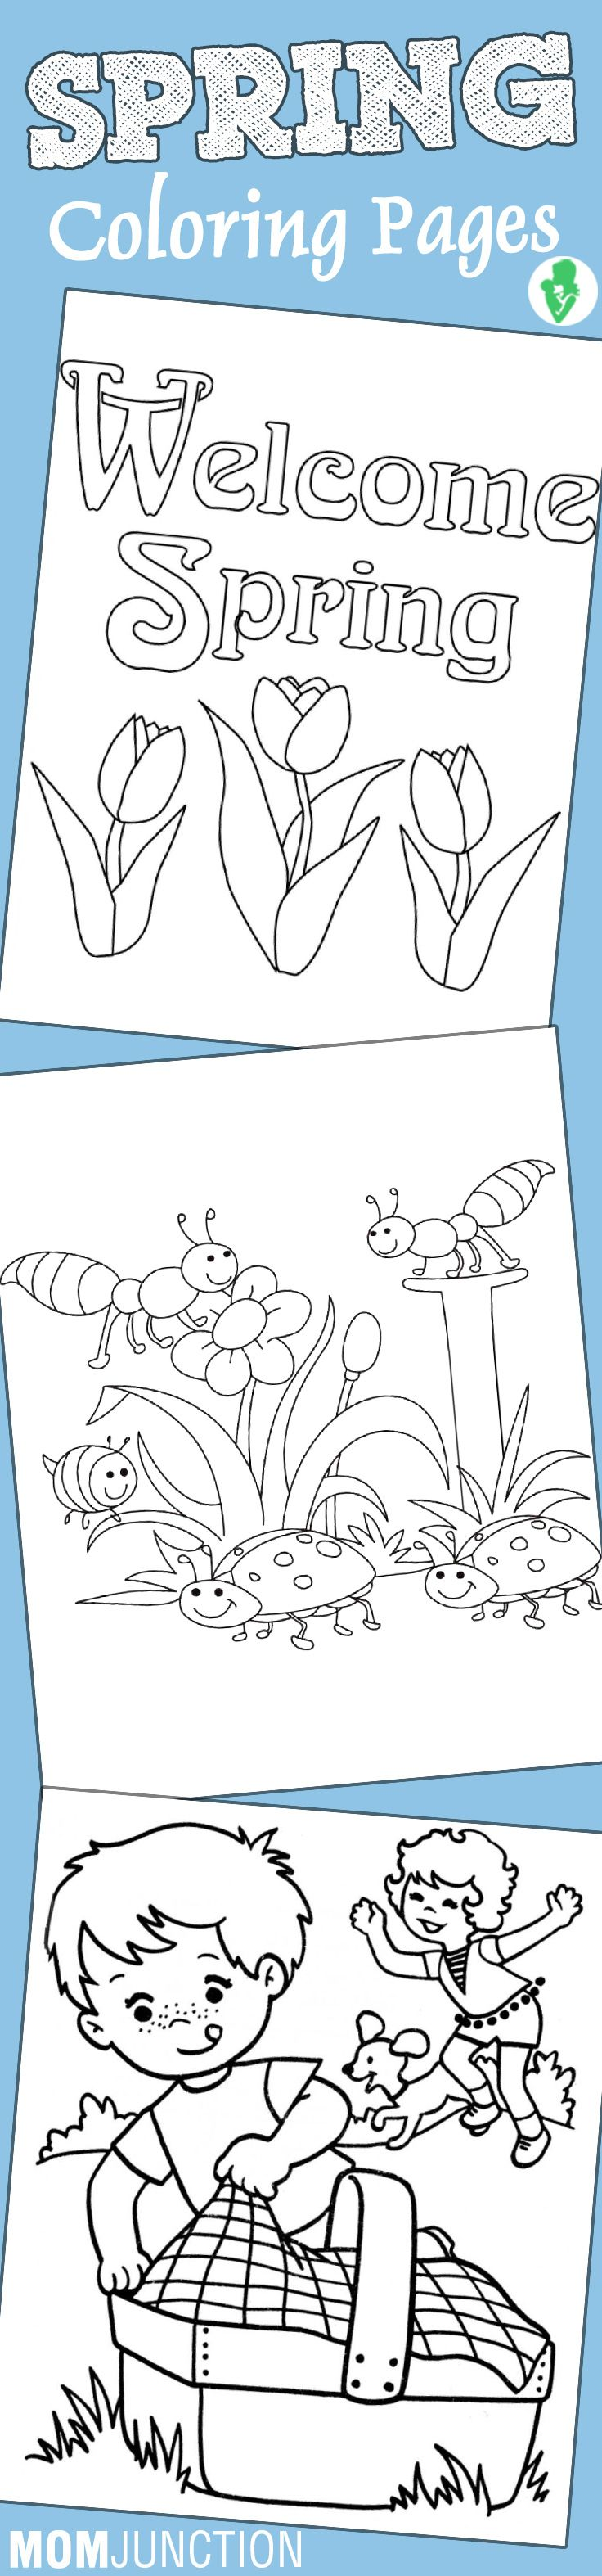 top 35 free printable spring coloring pages online spring craft